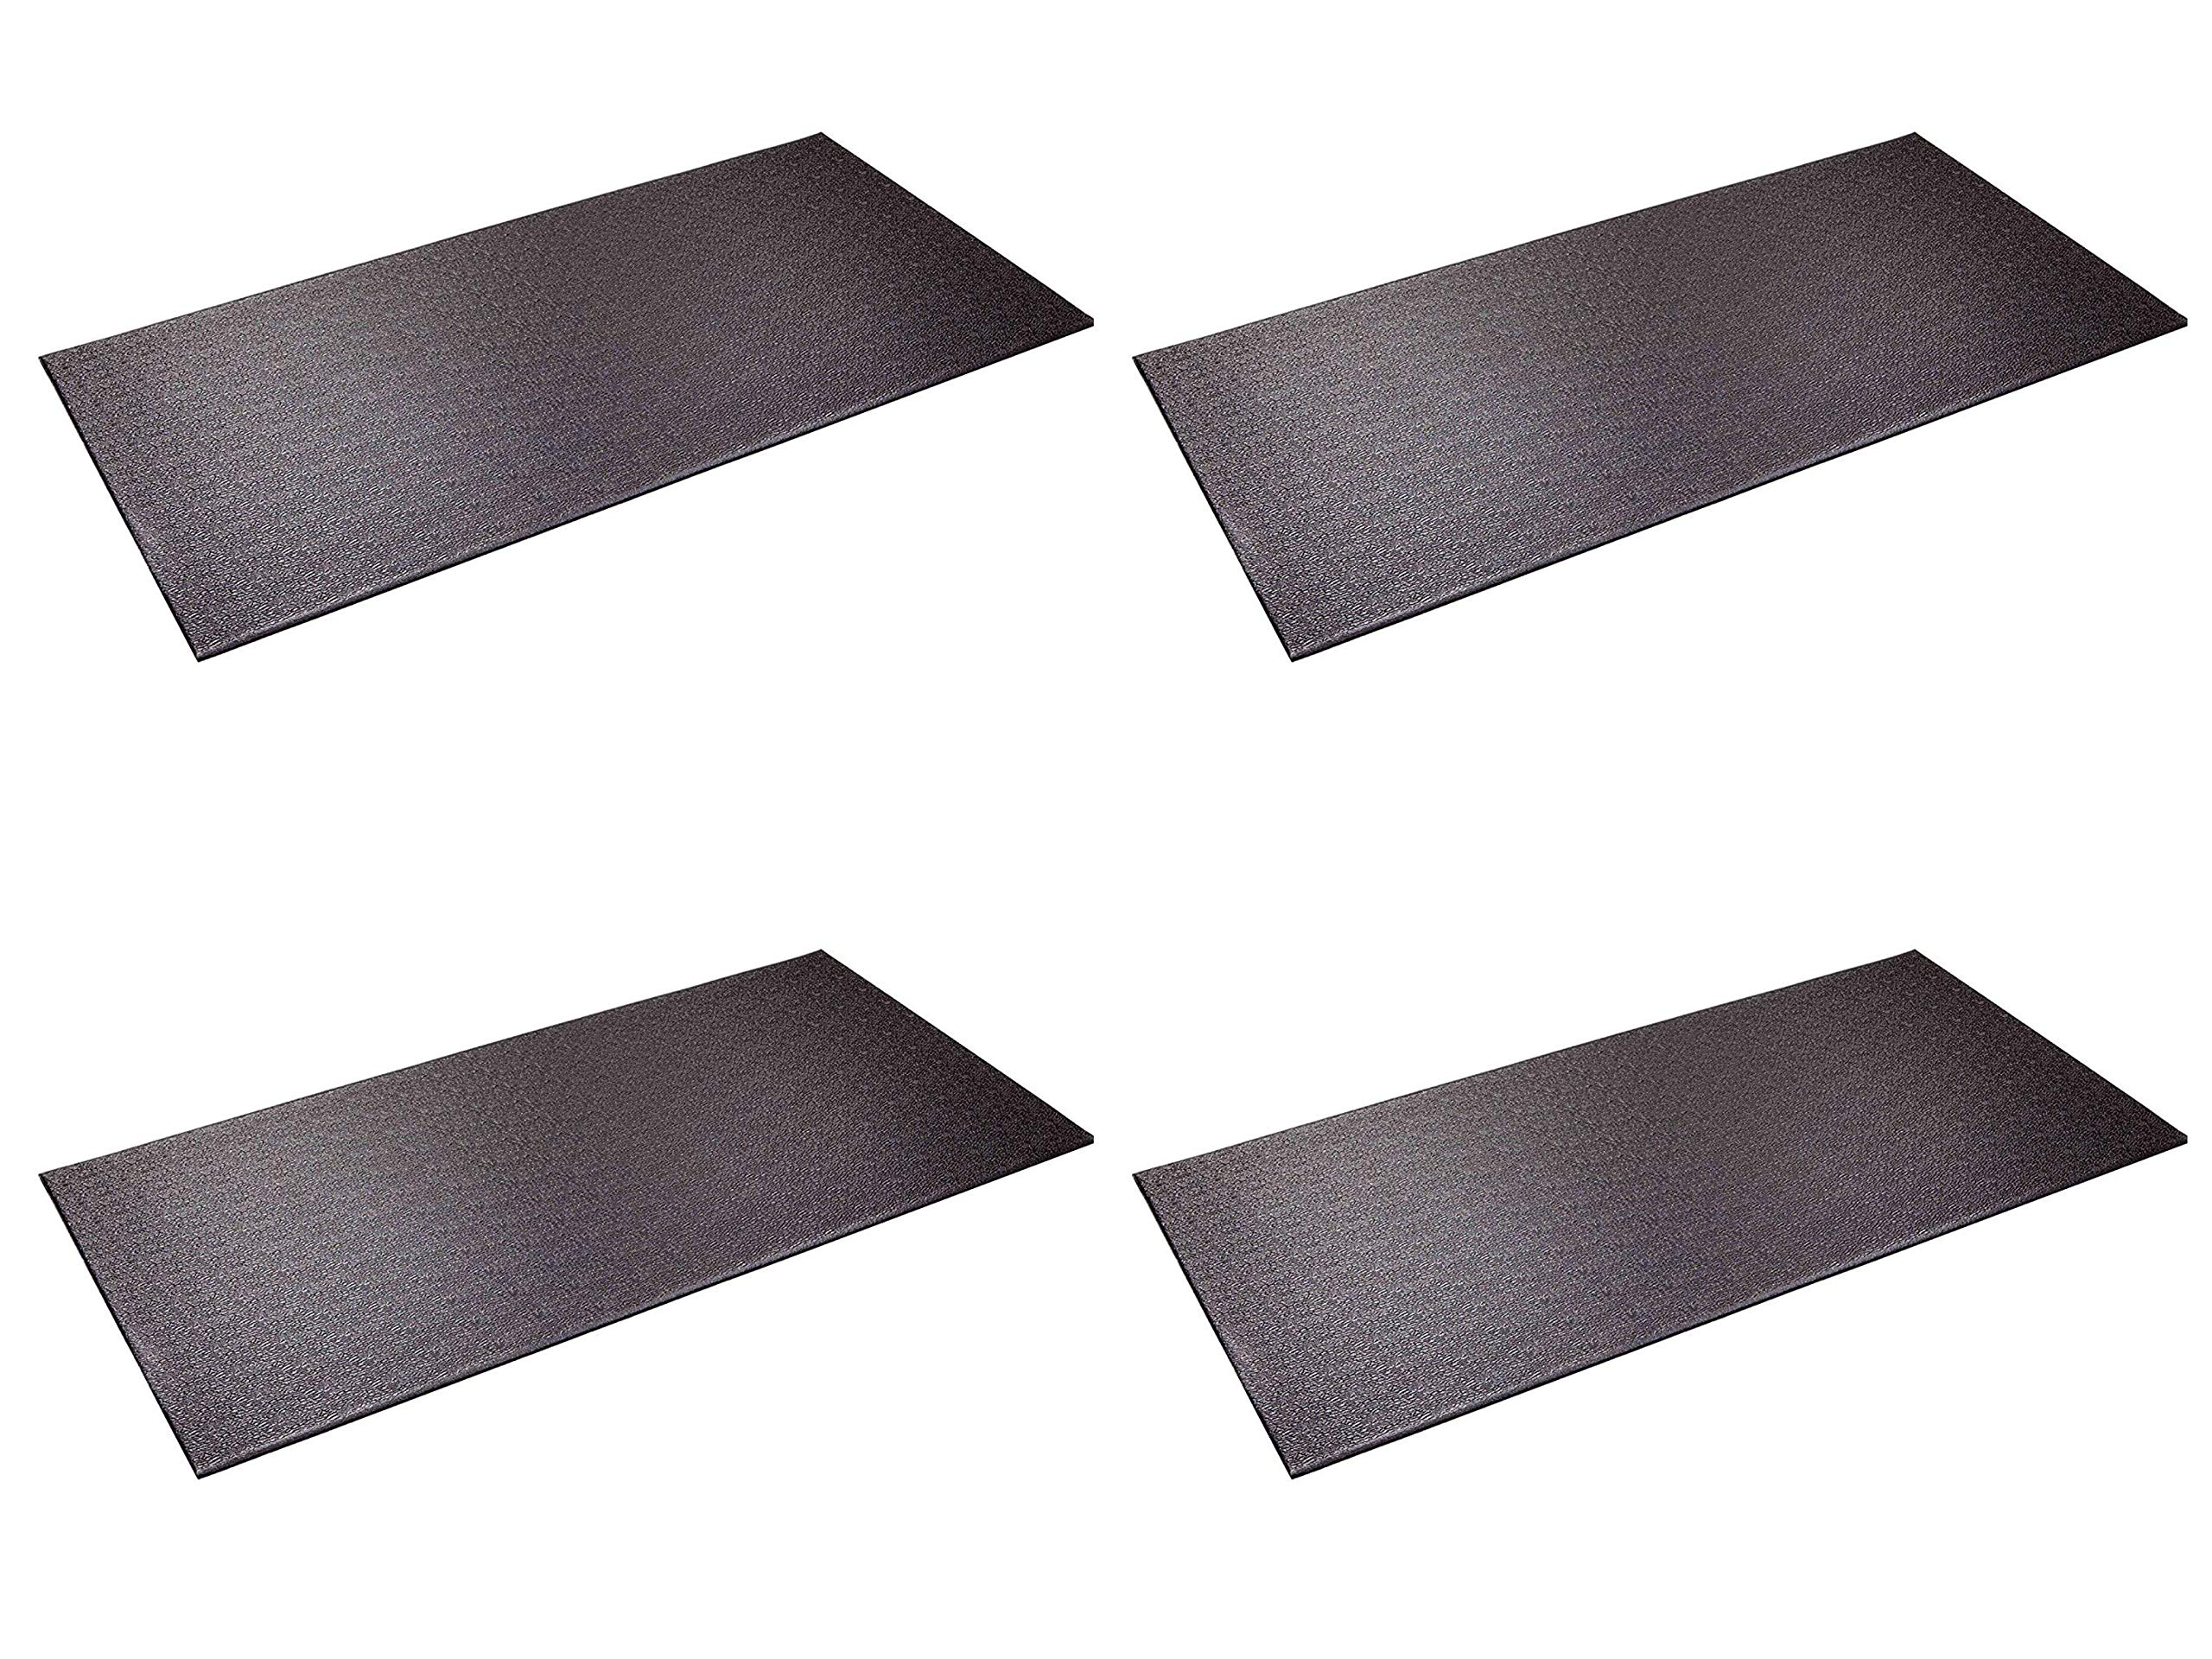 SuperMats Heavy Duty Equipment Mat 13GS Made in U.S.A. for Indoor Cycles Recumbent Bikes Upright Exercise Bikes and Steppers (2.5 Feet x 5 Feet) (30-Inch x 60-Inch) (76.2 cm x 152.4 cm) (Fоur Расk)